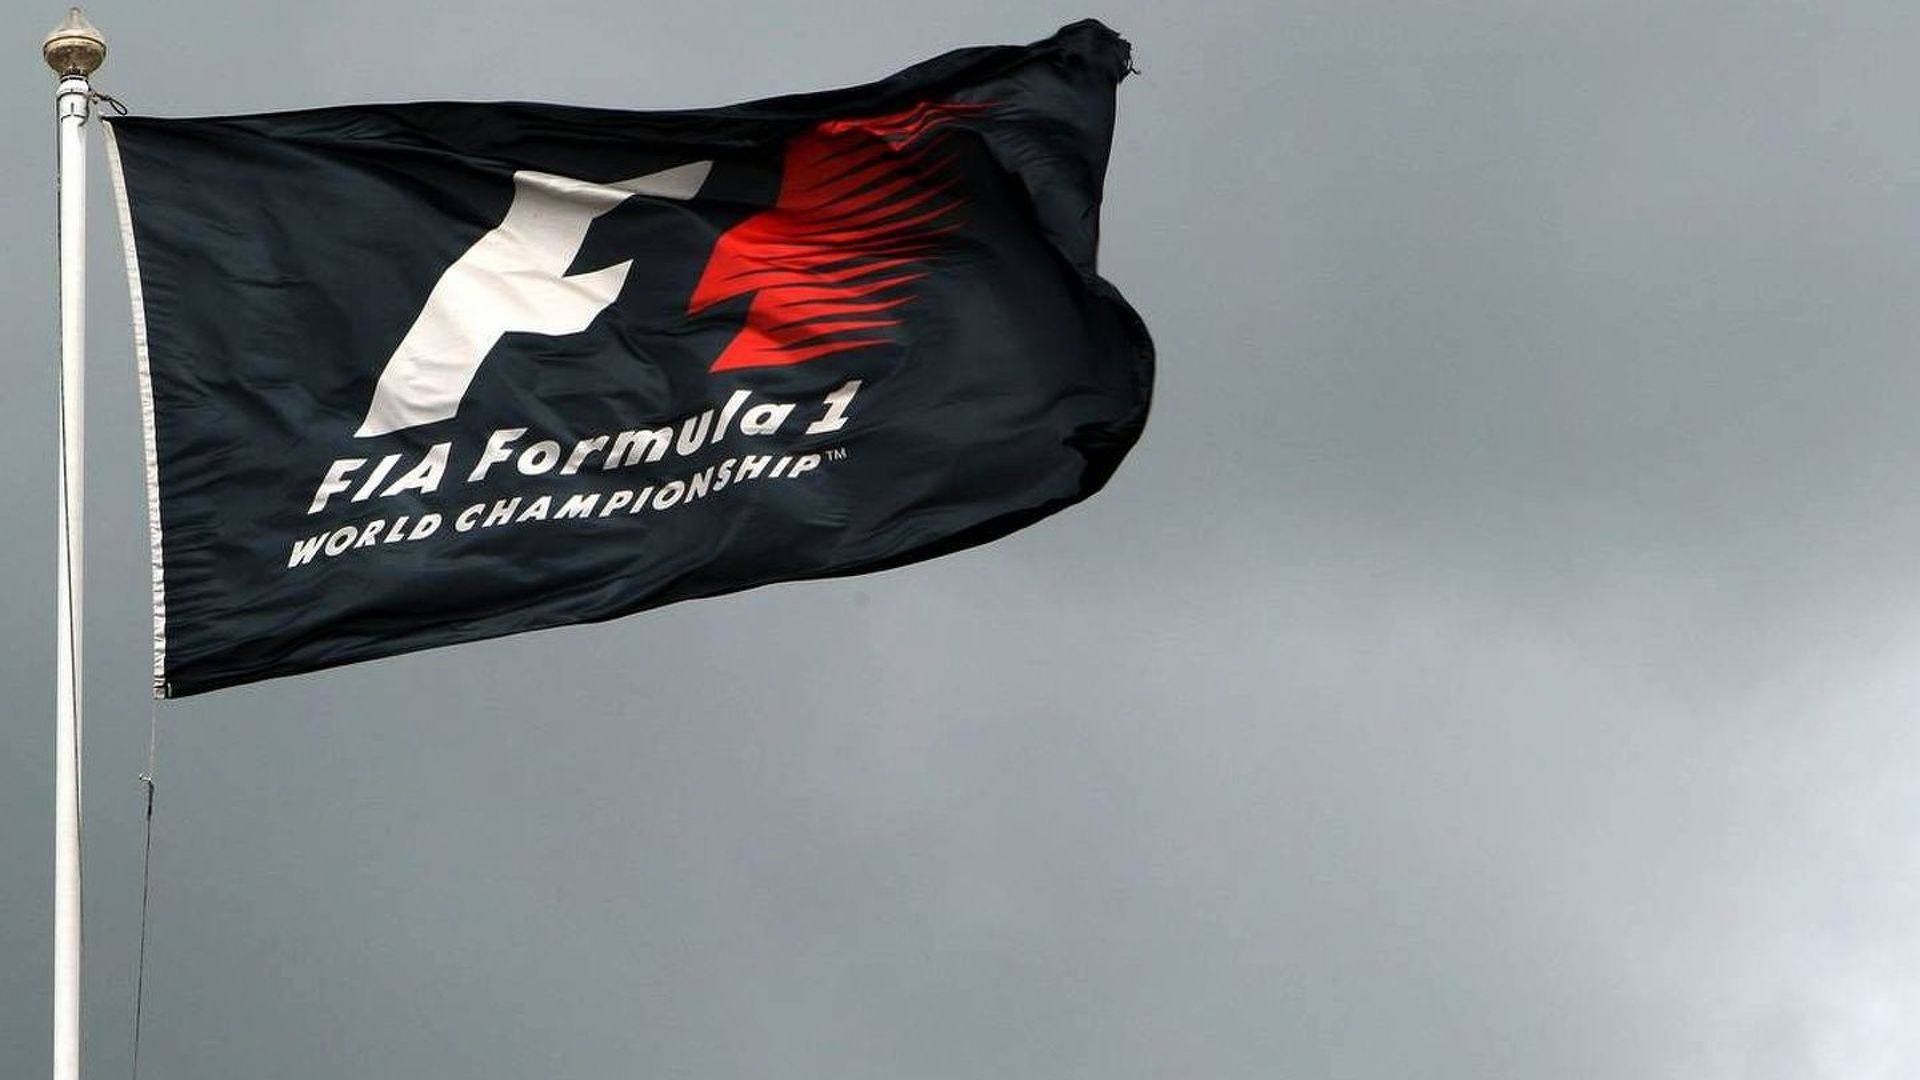 More details emerge about F1's new shape for 2013